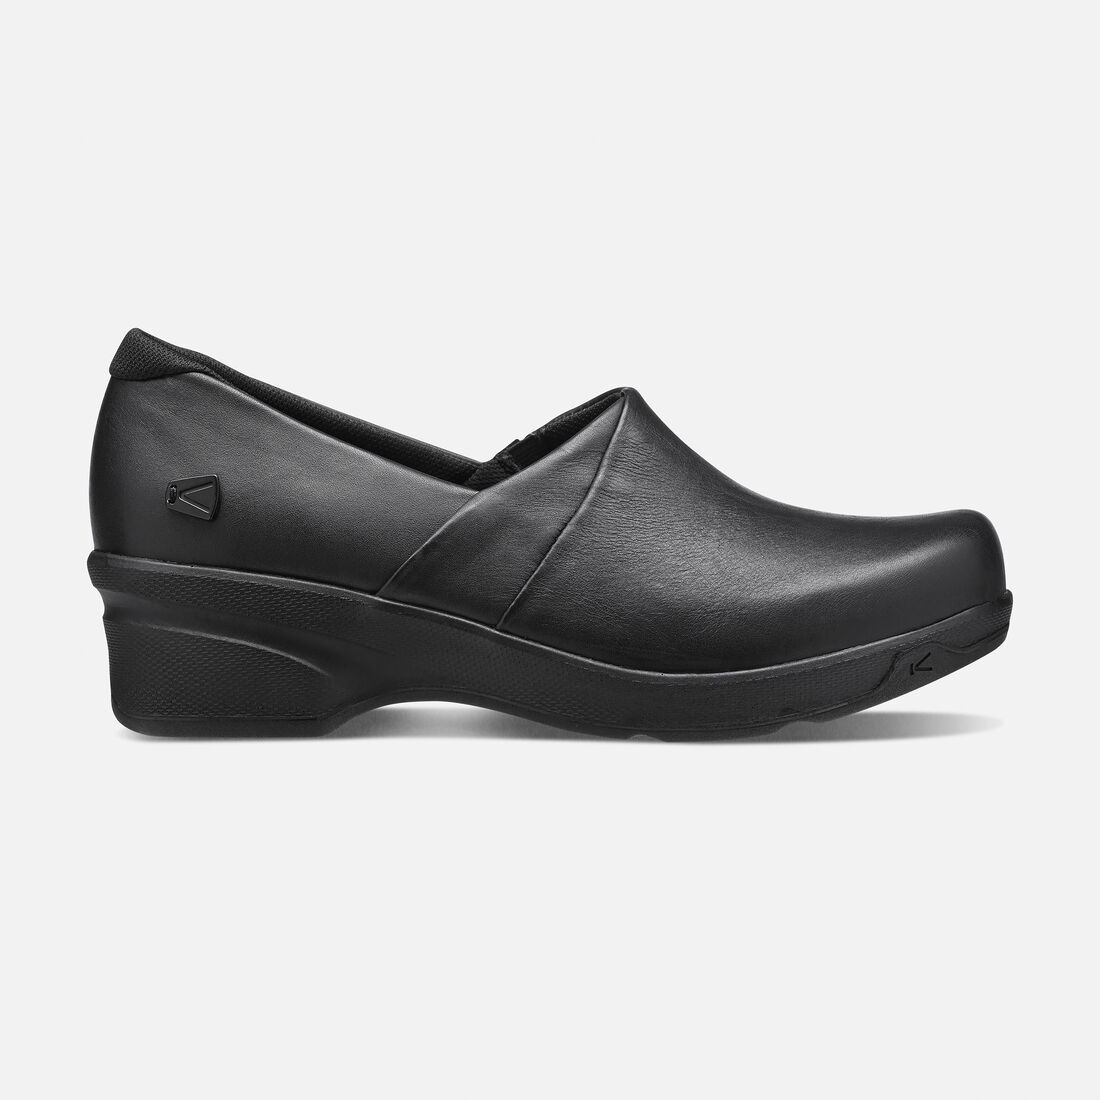 Women's Mora Service Clog in Black - large view.